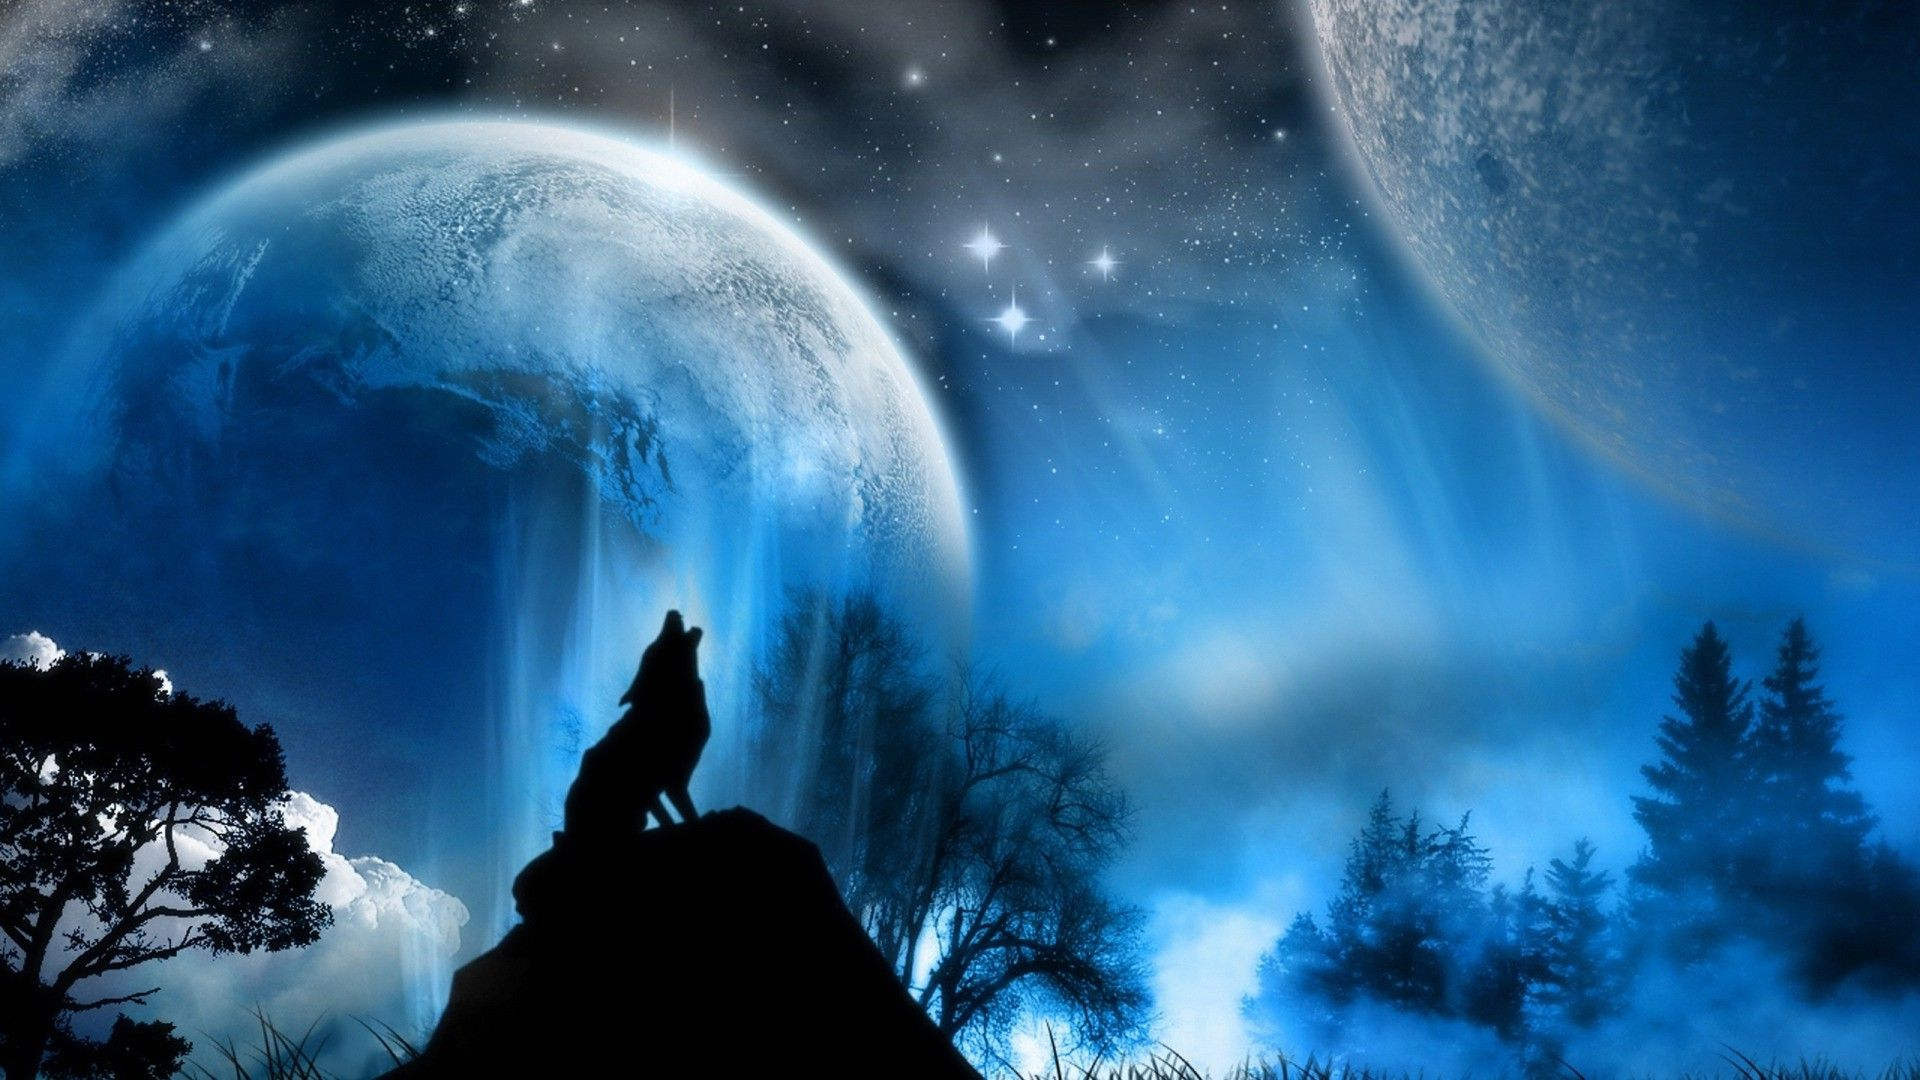 HD 1920x1080 Abstract Wolf Howling Free Wallpaper